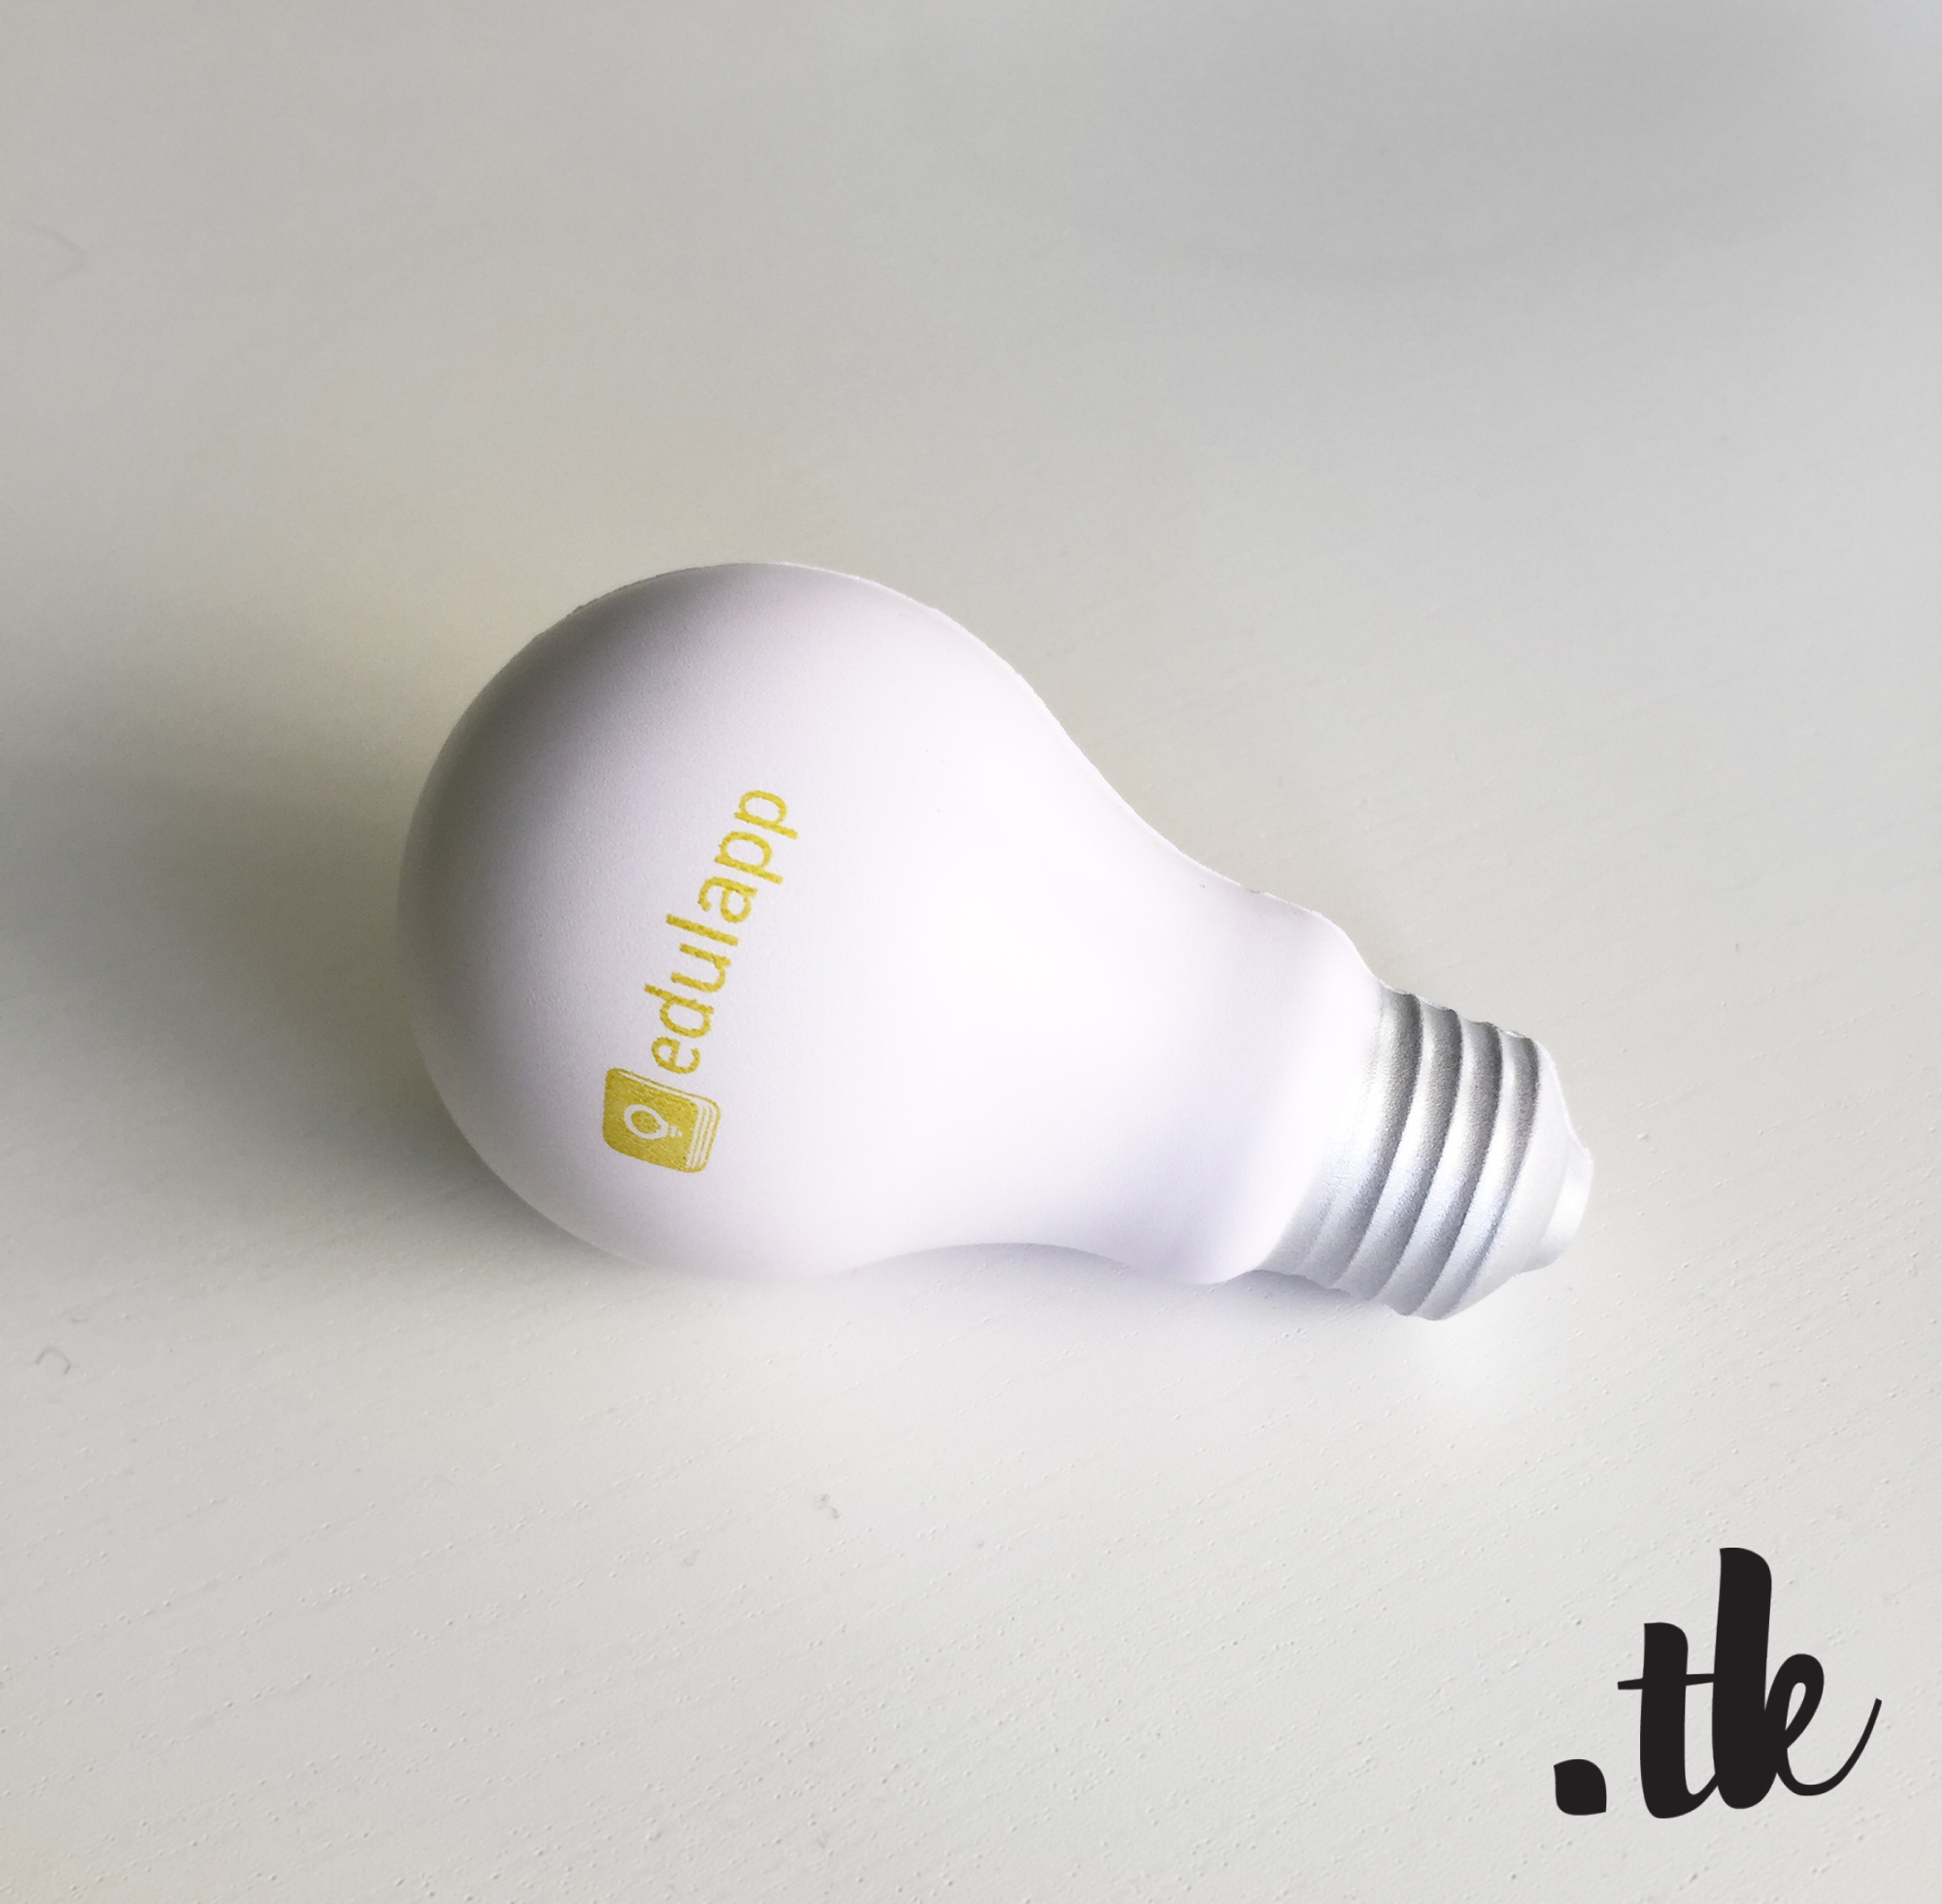 Anti-Stress Bulb: Give Away Design, Event Marketing; Client: edulapp